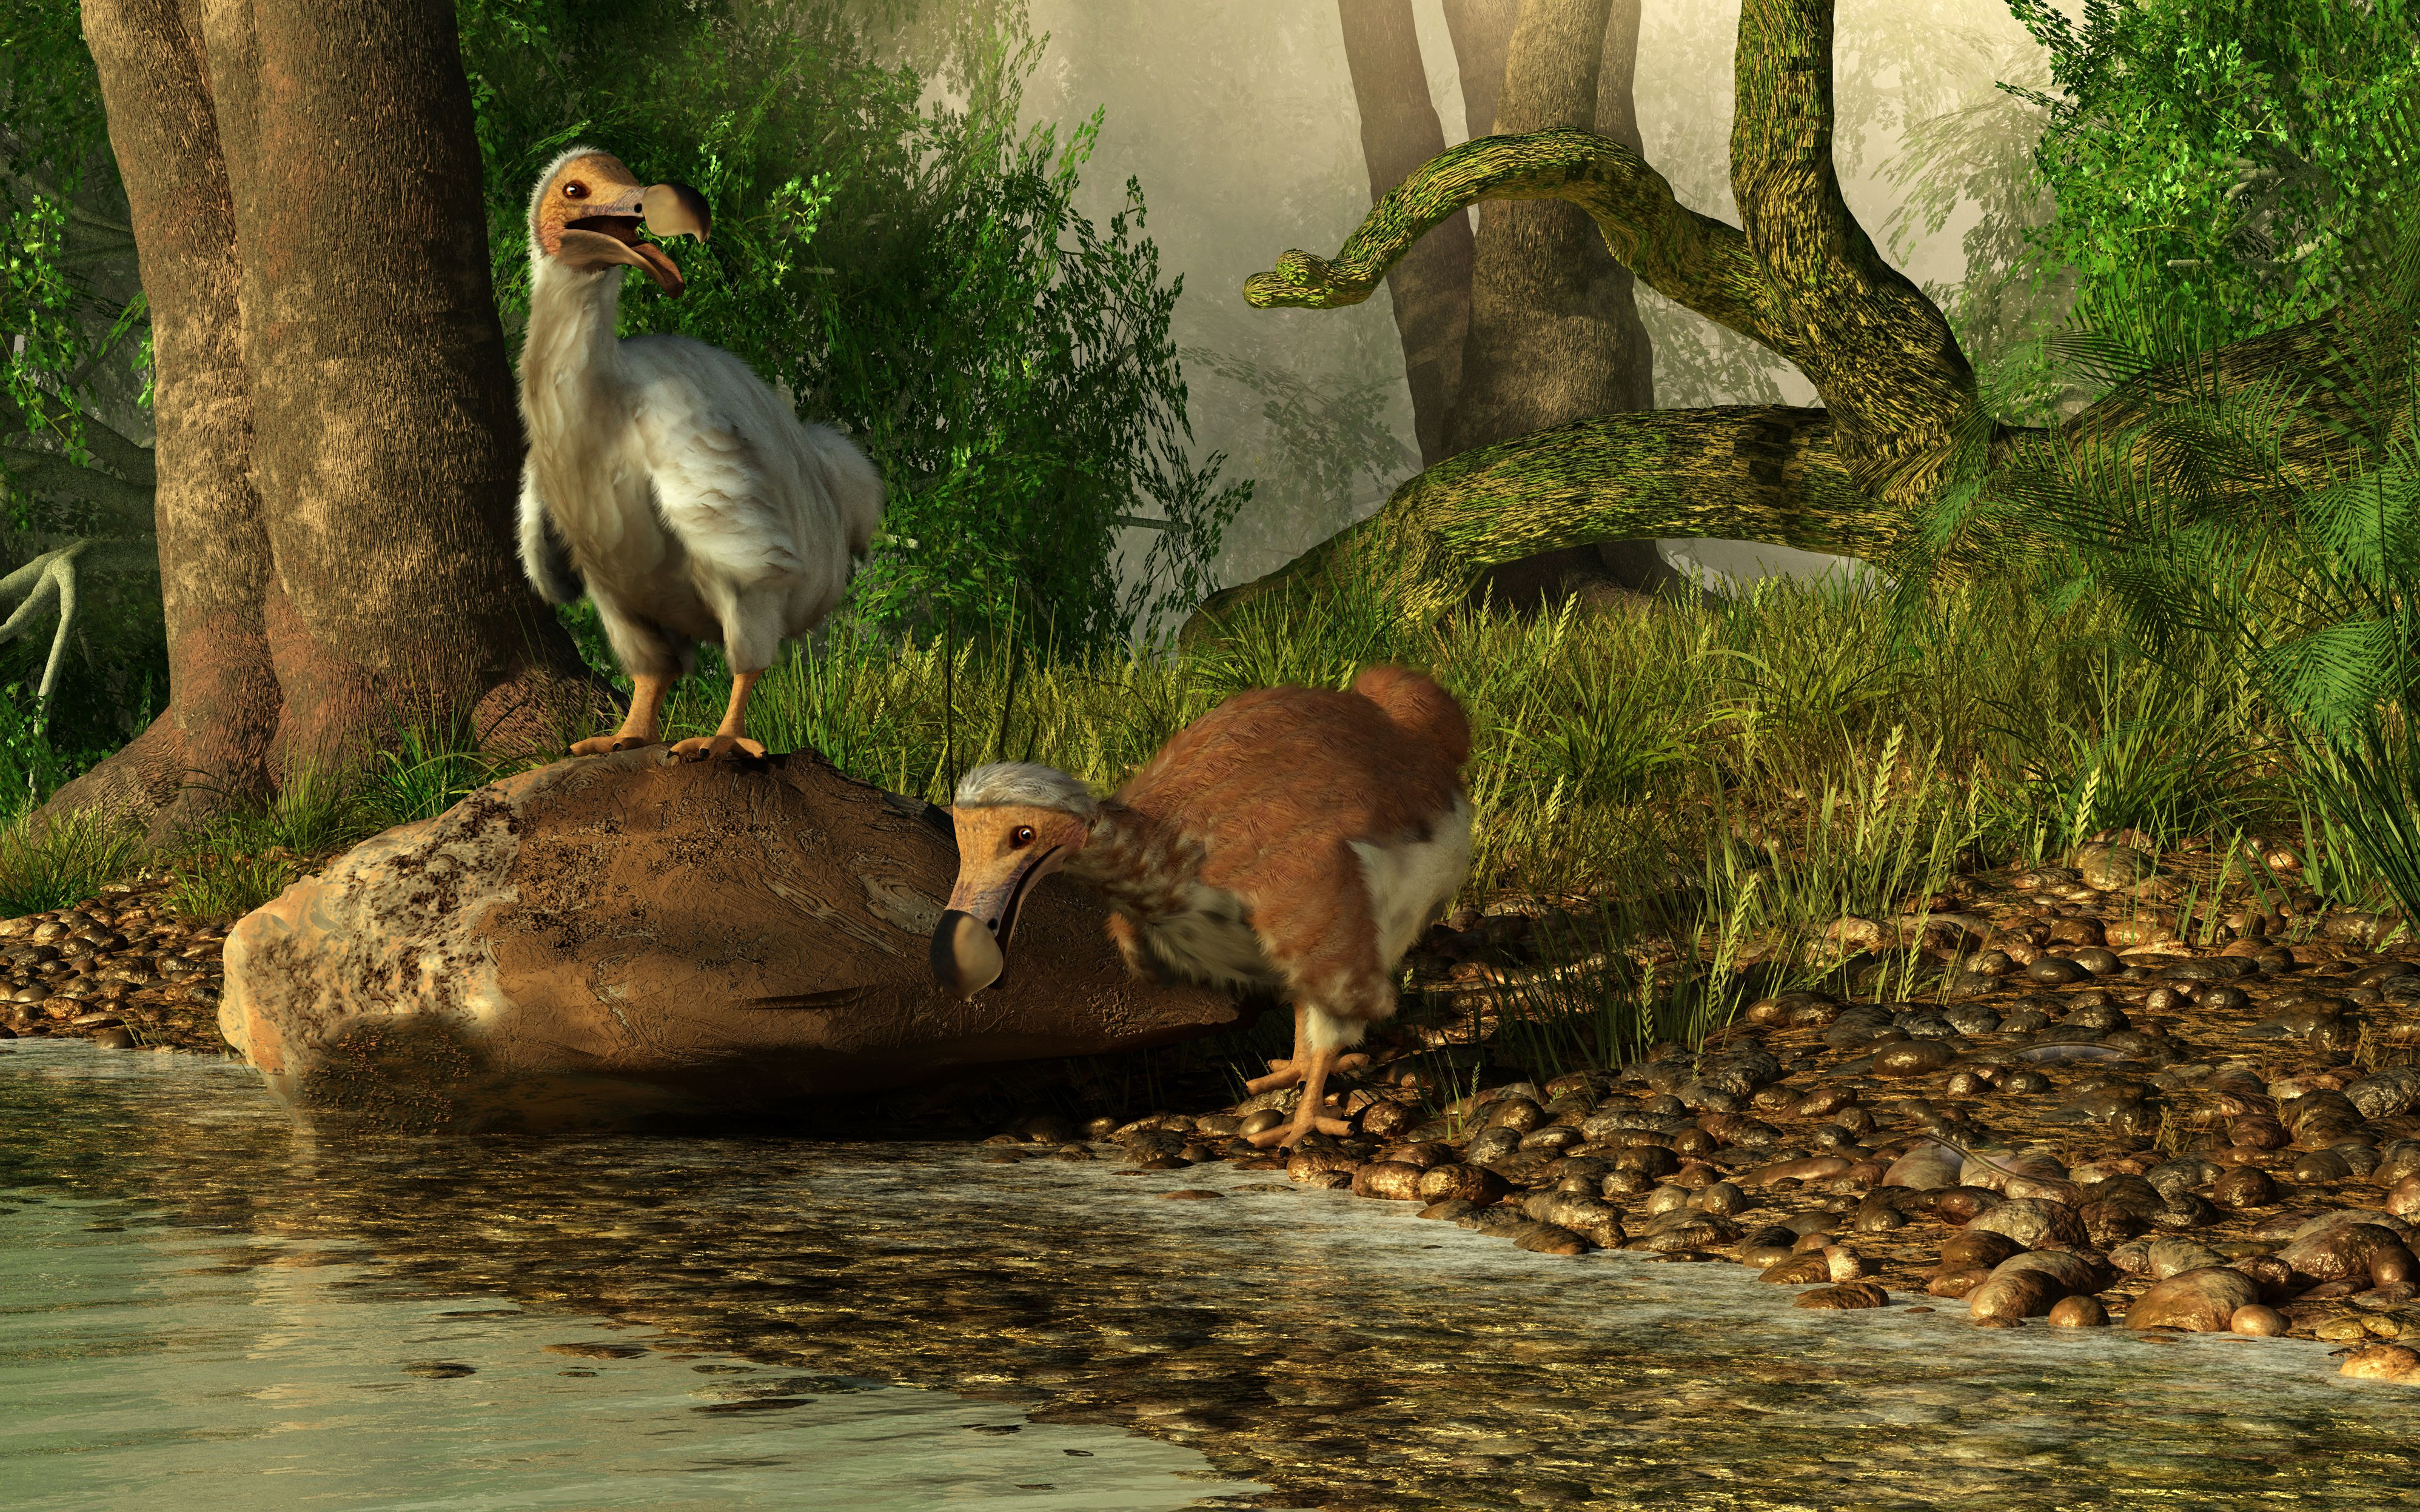 A pair of Dodo birds drinking at a river